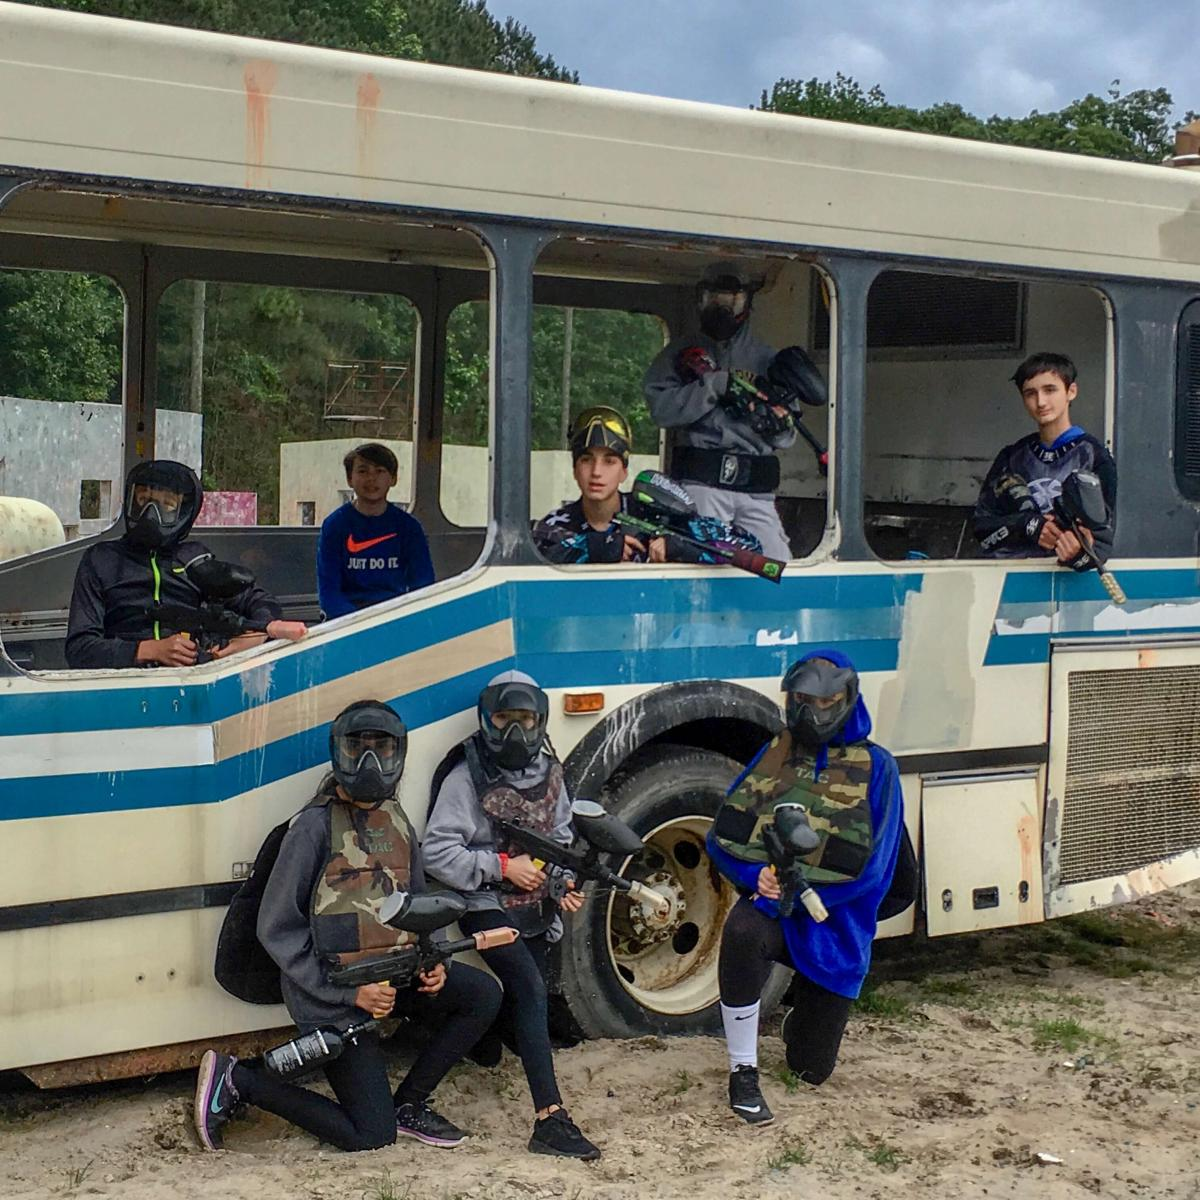 OC Paintball 36 foot bus